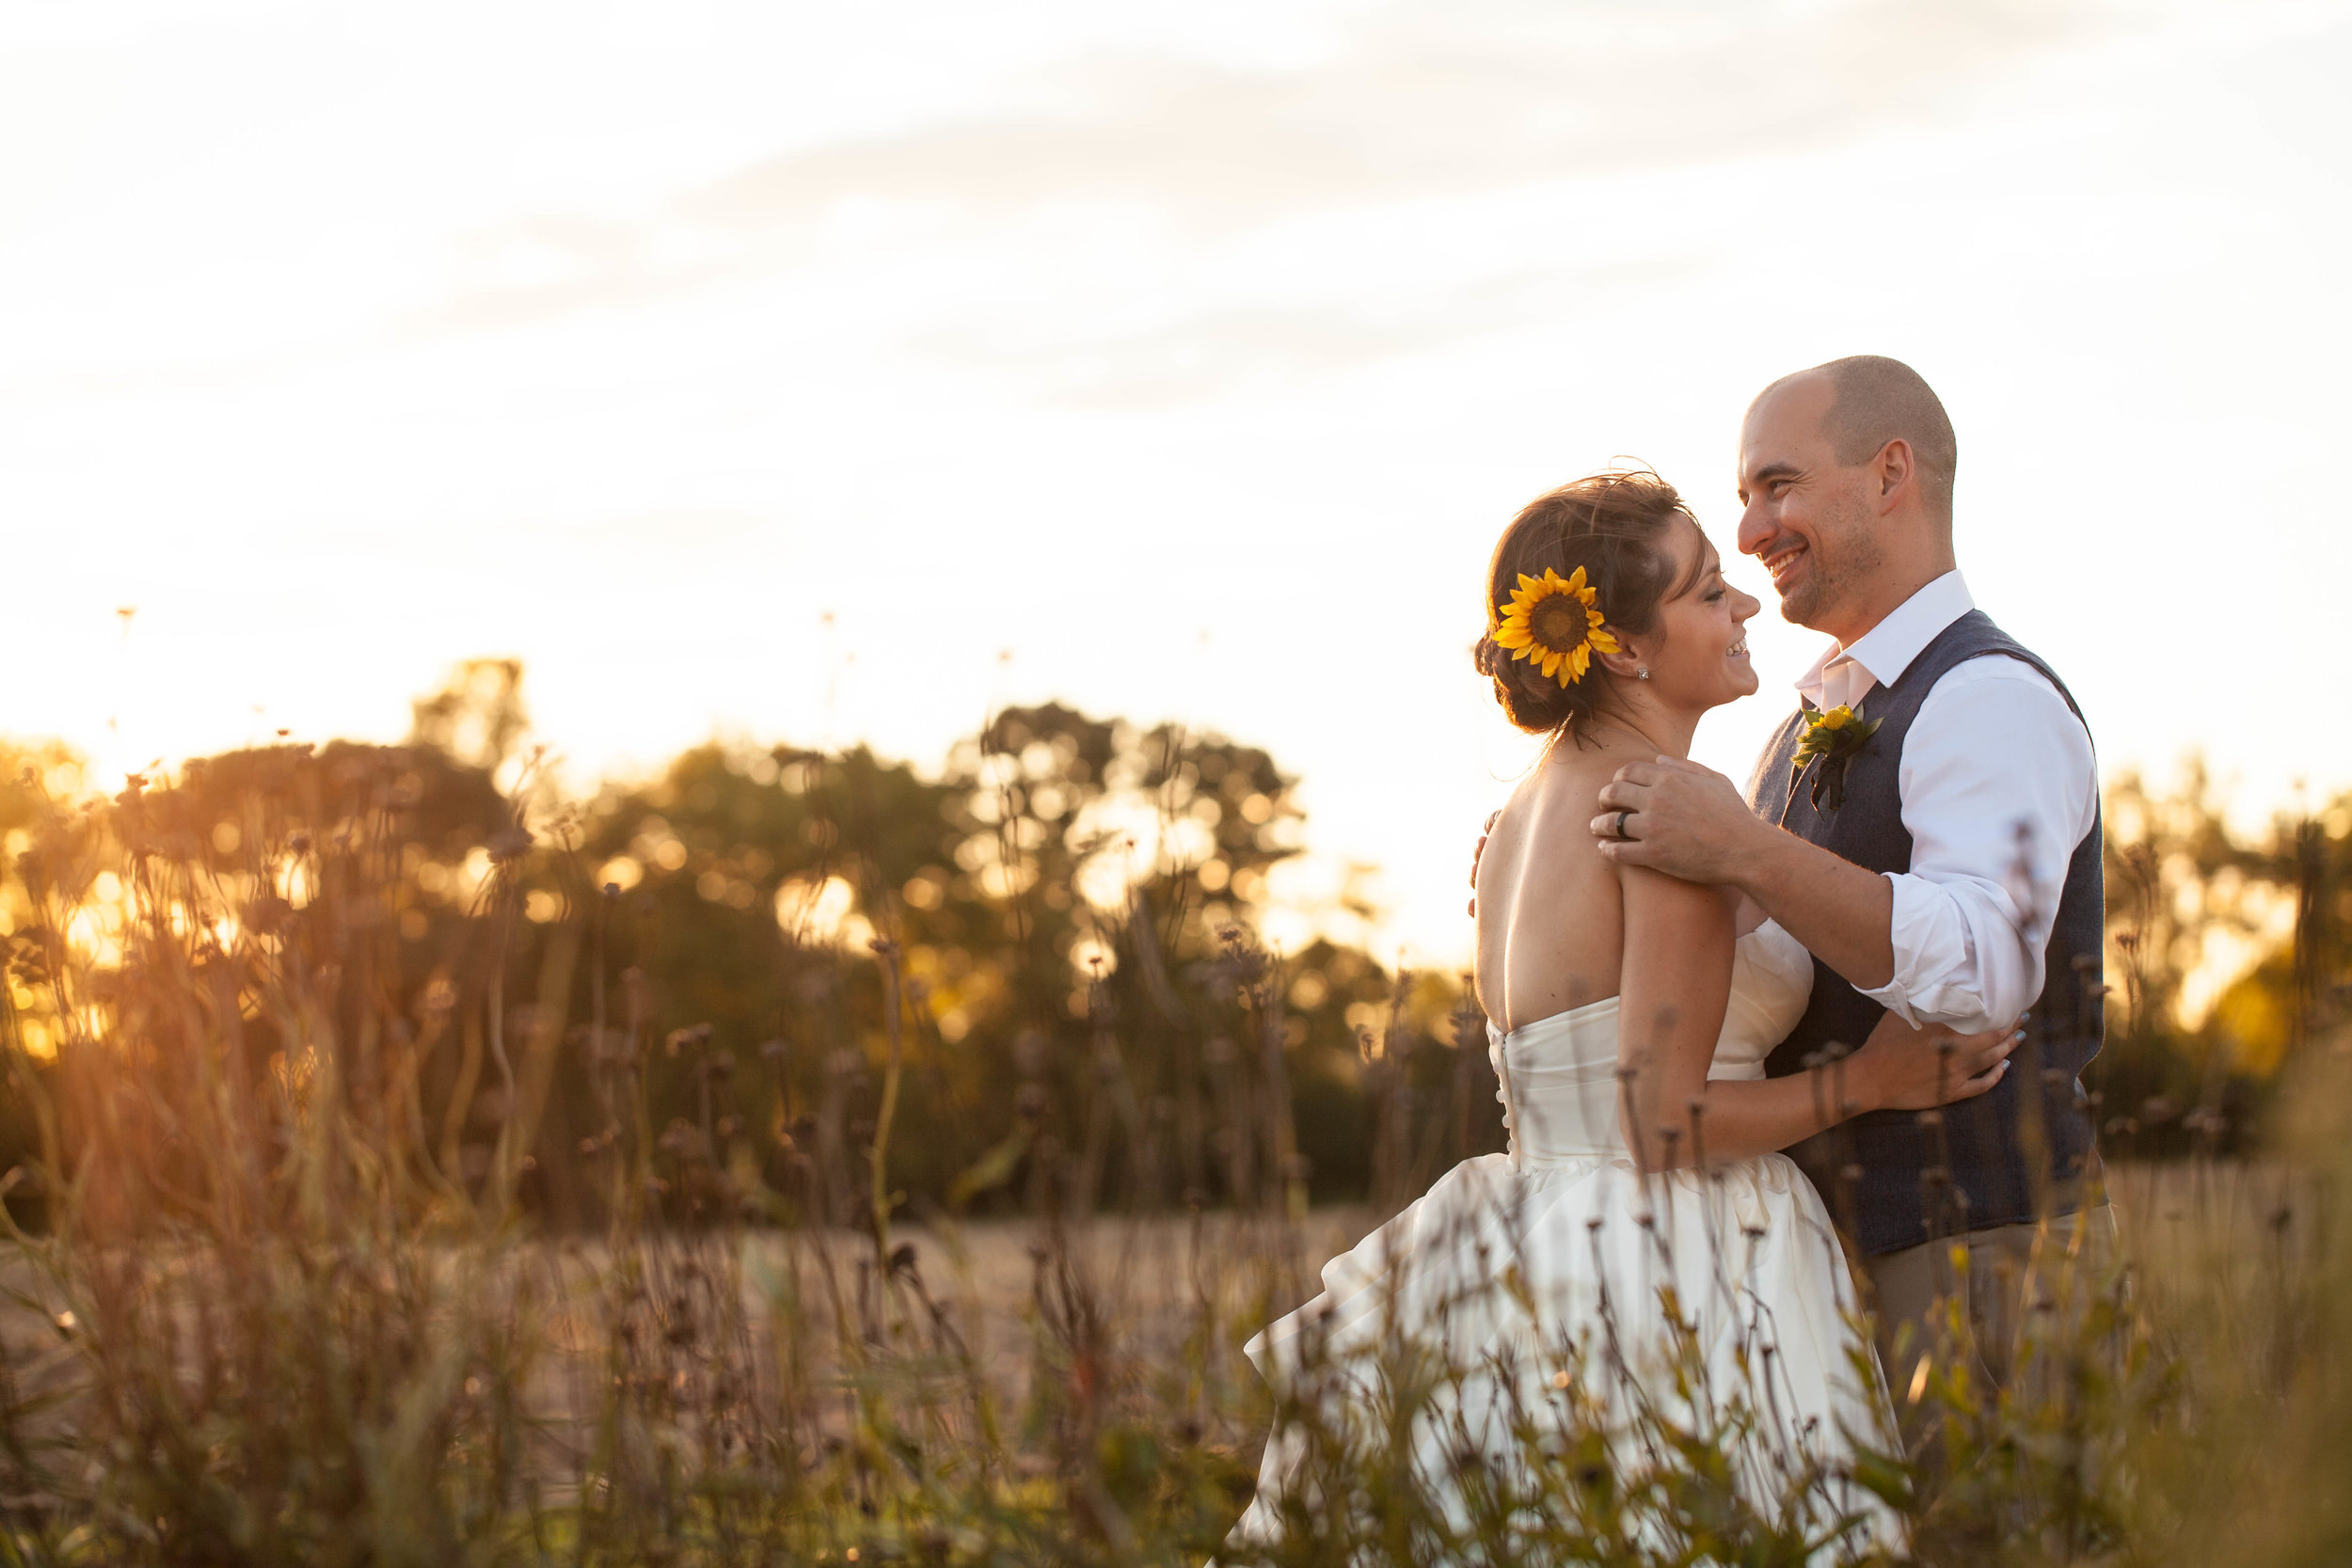 The surrounding fields provide a beautiful, natural backdrop.  Image by  Katy B Imagery